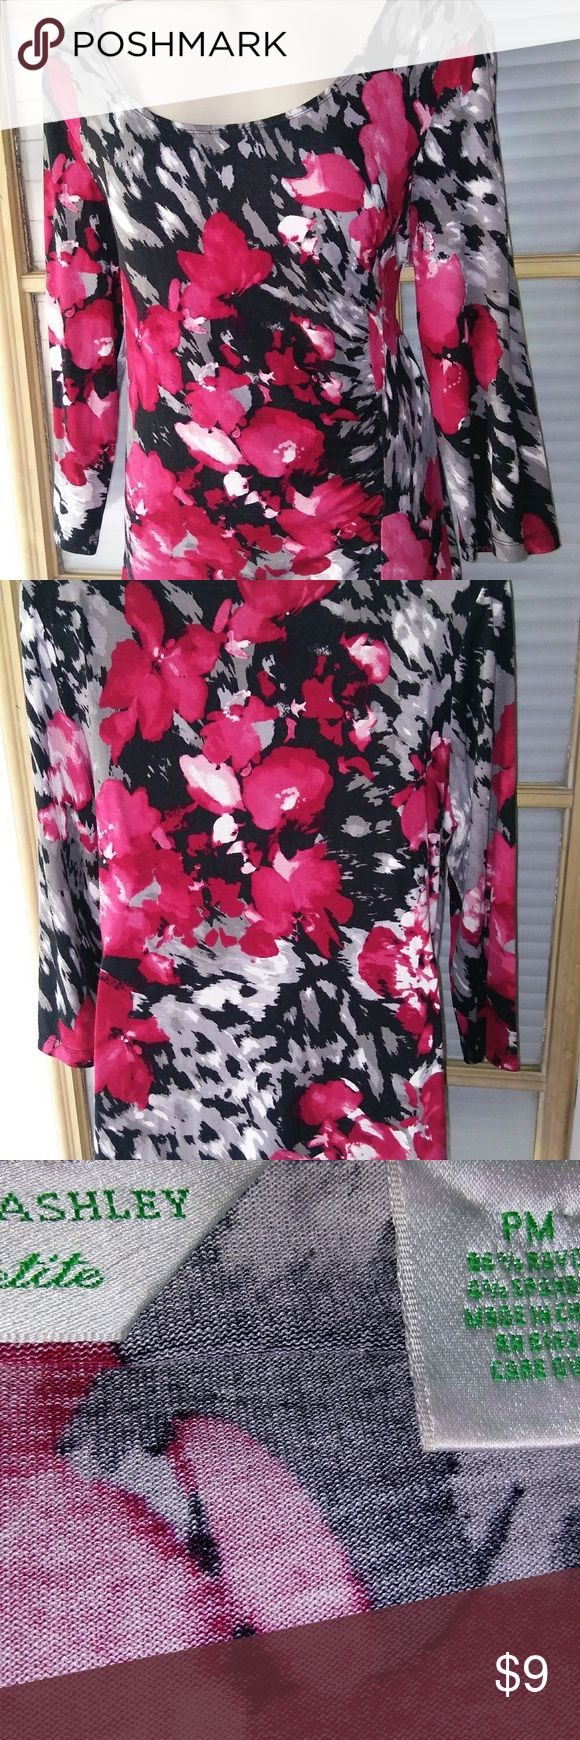 """LAURA ASHLEY WOMENS PETITE TOP SHIRT PM LAURA ASHLEY WOMENS PETITE TOP SHIRT ROSES PM  Cute and comfy! Very good condition! Measures: Length 24.5"""", sleeve 18"""", pit to pit 18"""". Laura Ashley Tops Tees - Long Sleeve"""